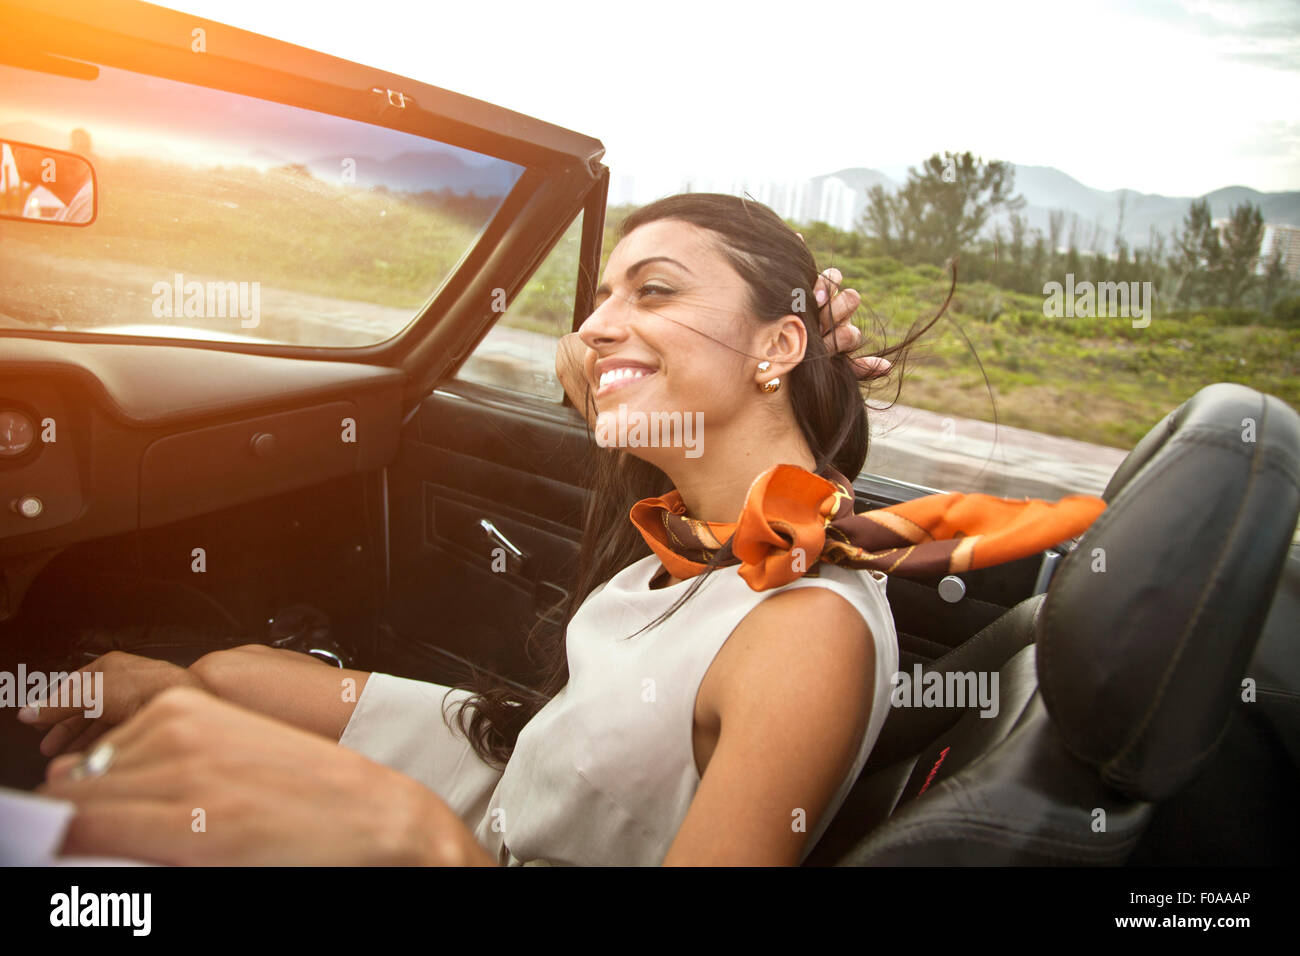 Mid adult woman in passenger seat of convertible car - Stock Image